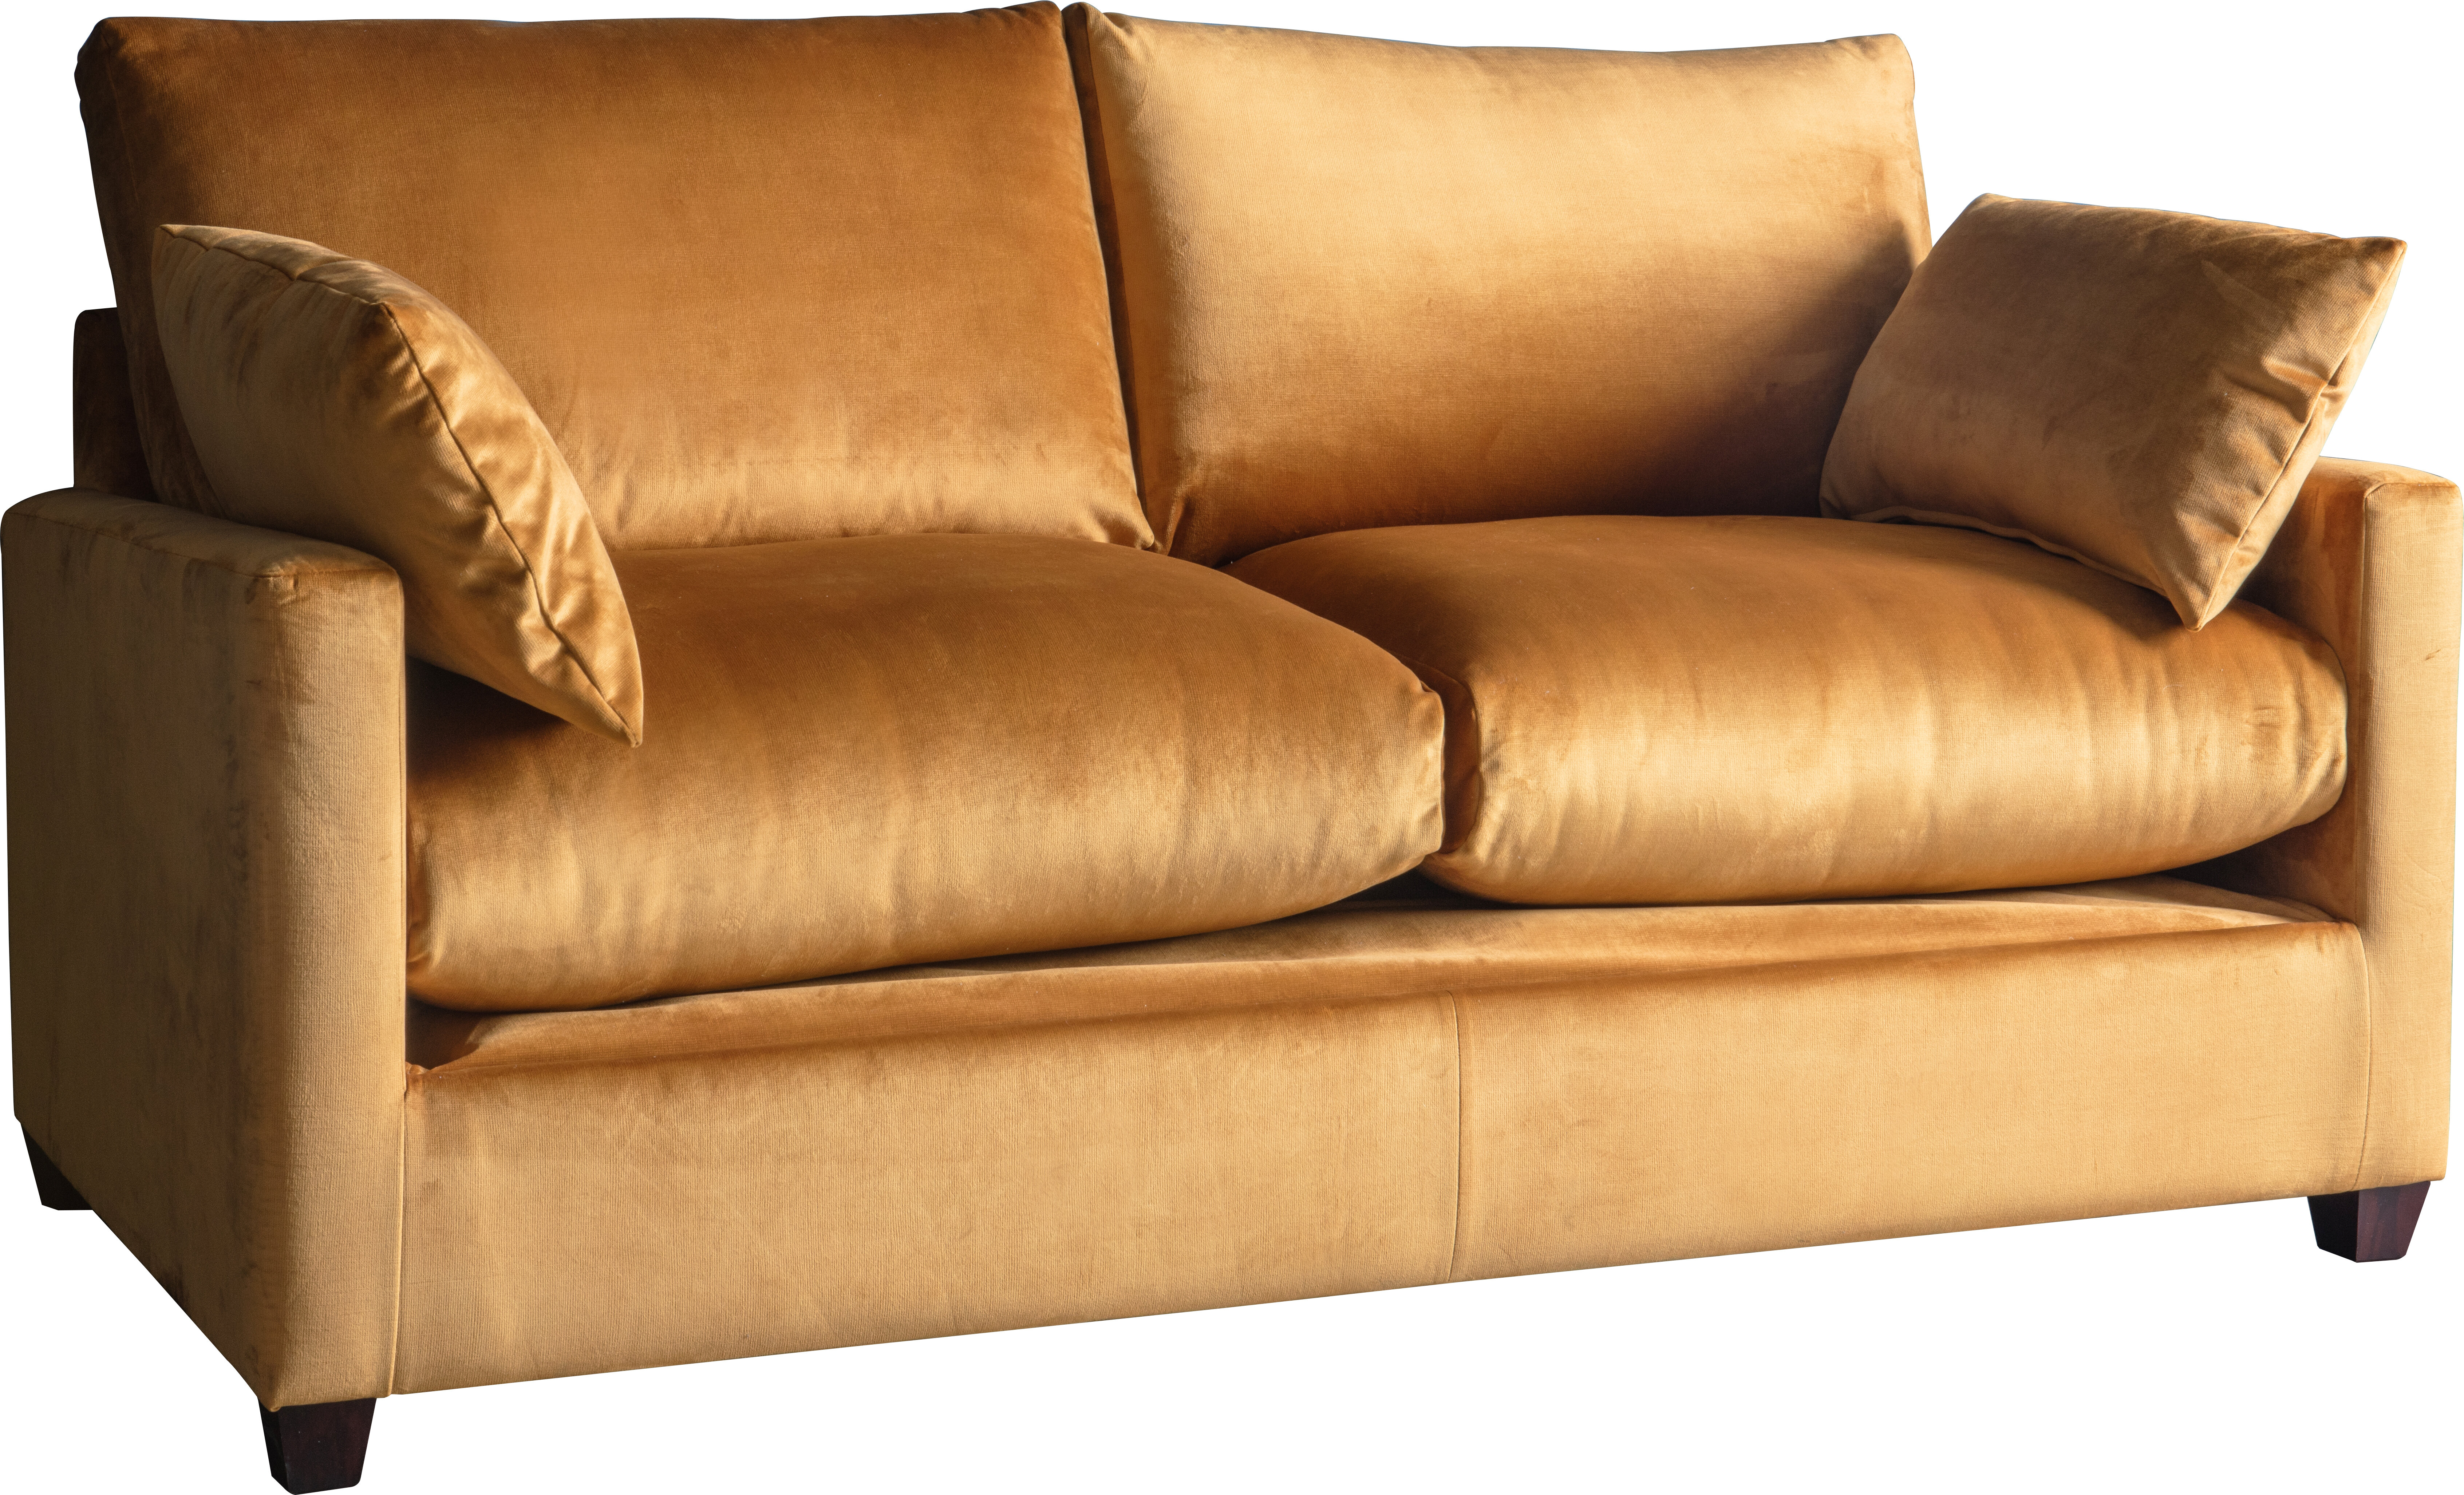 Chevalier 2 Seater Fold Out Sofa Bed